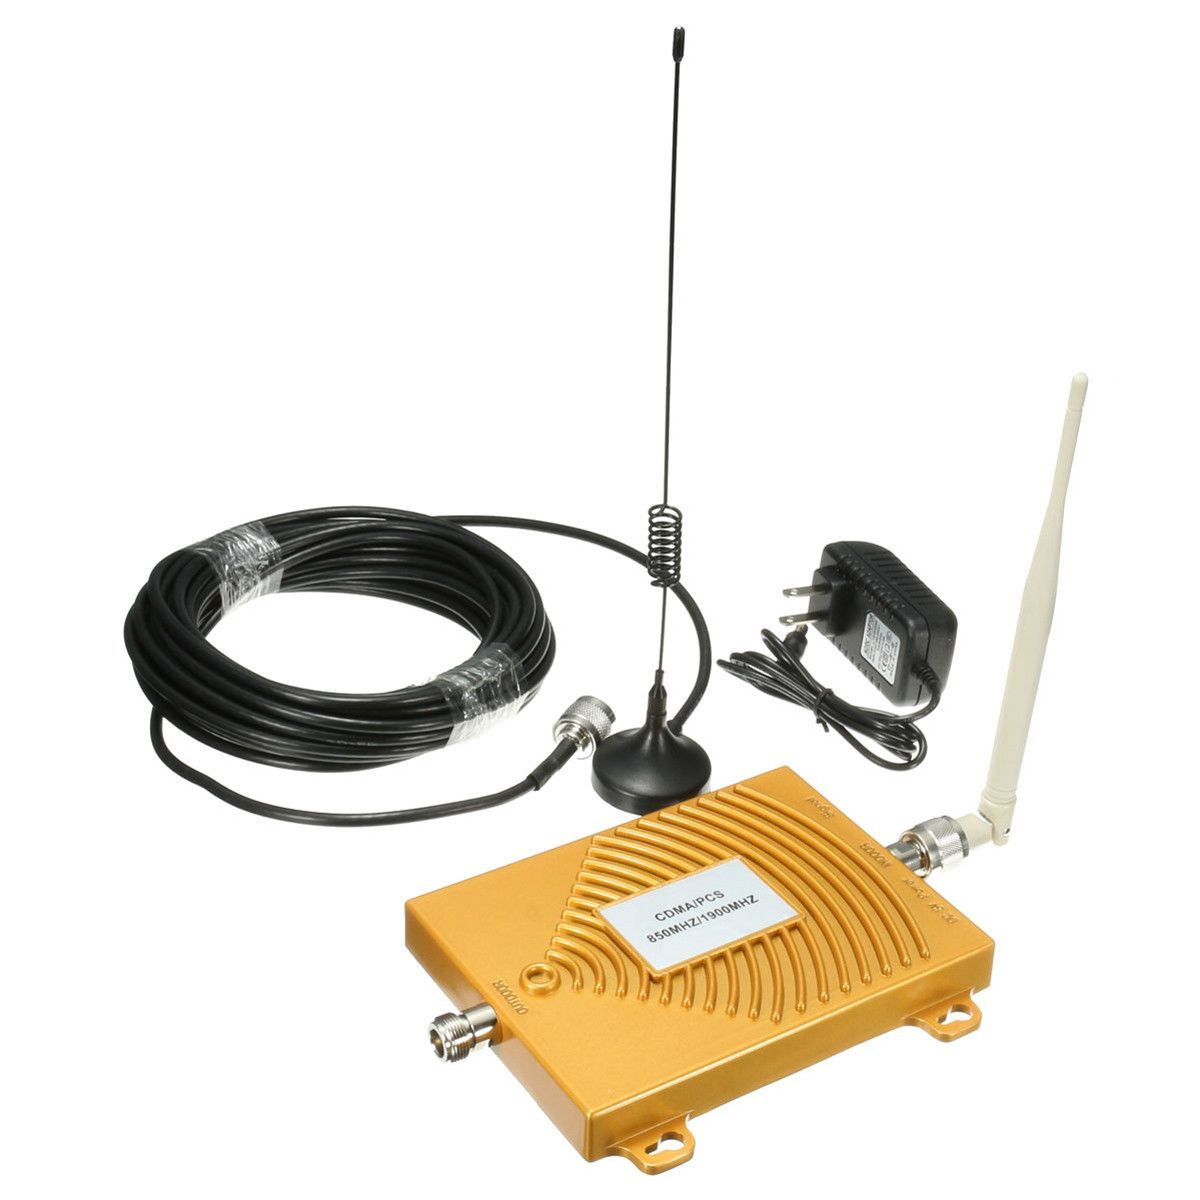 Cdmapcs 8501900mhz mobile phone signal repeater booster